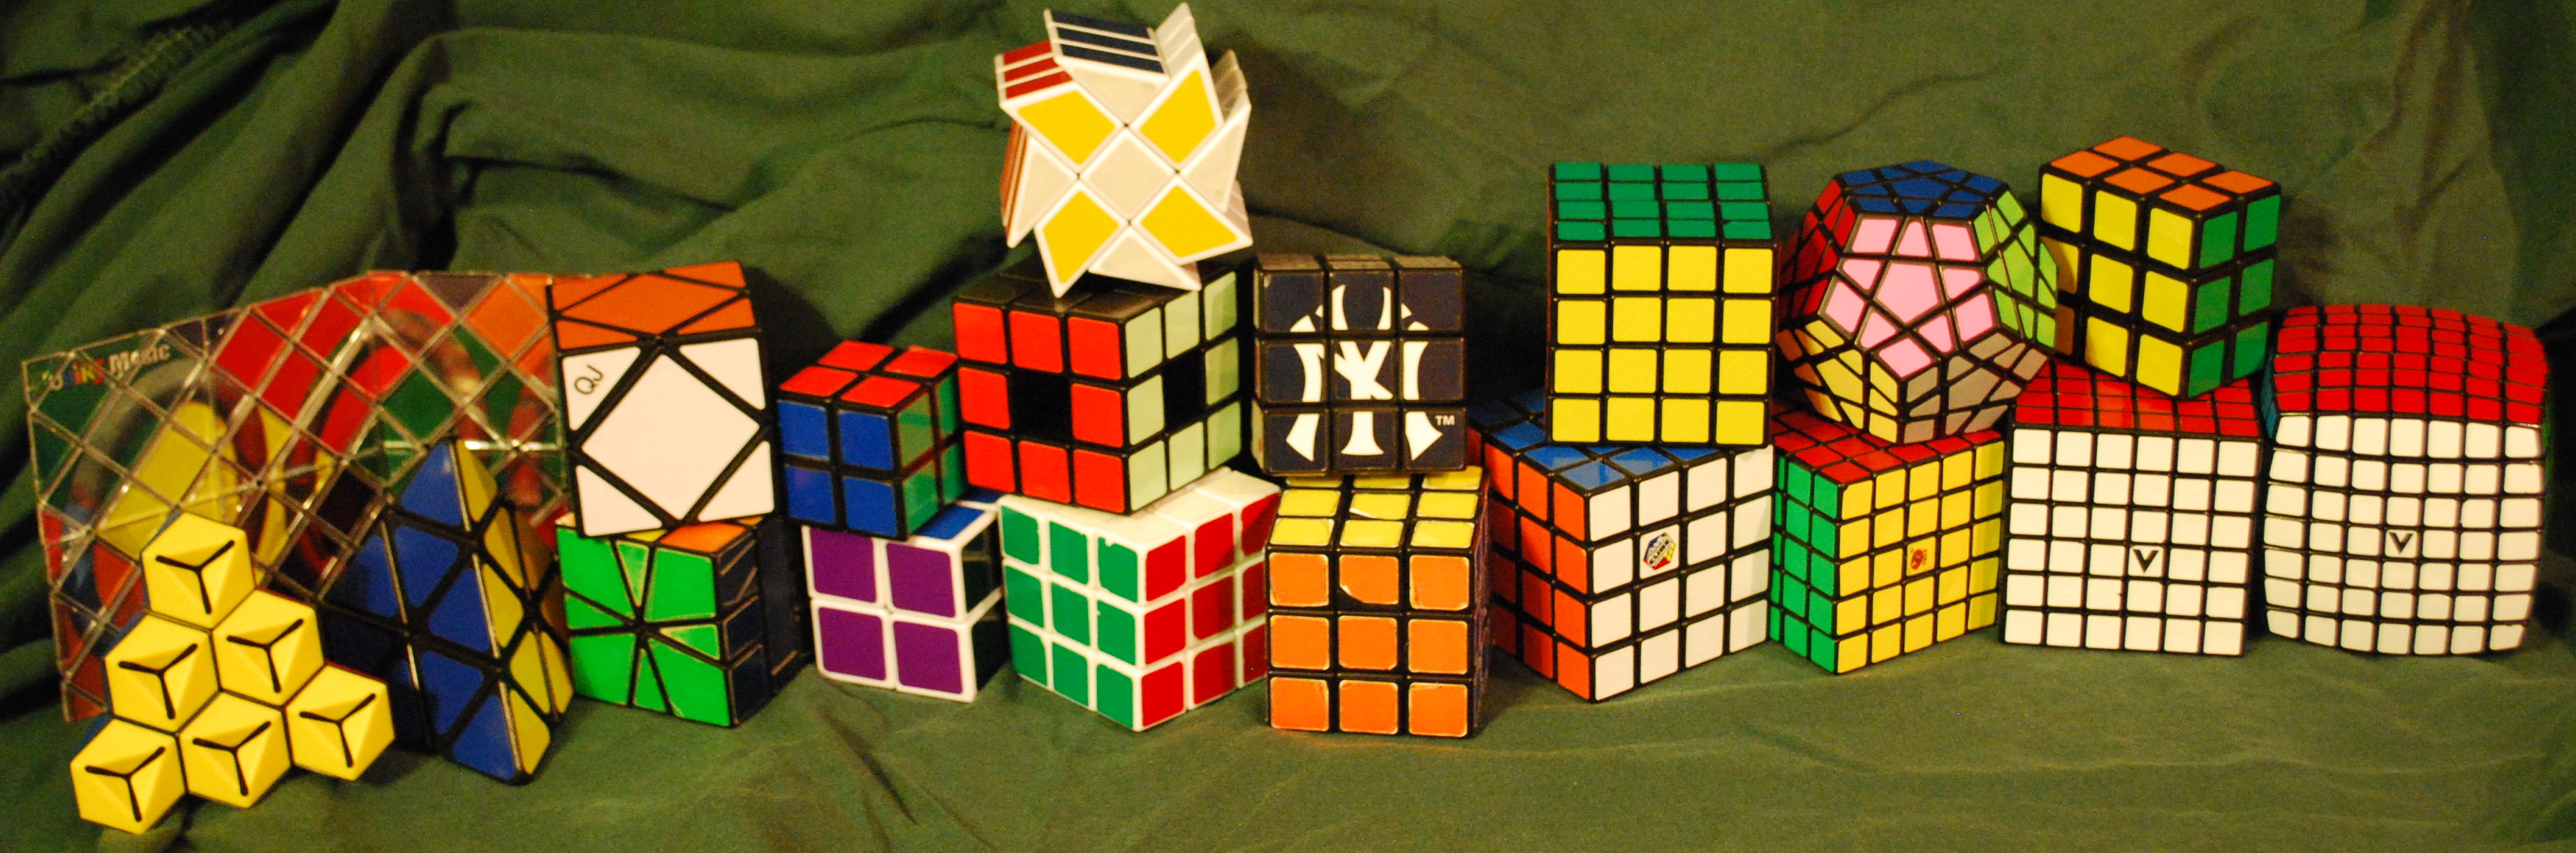 How to collect a rubiks cube